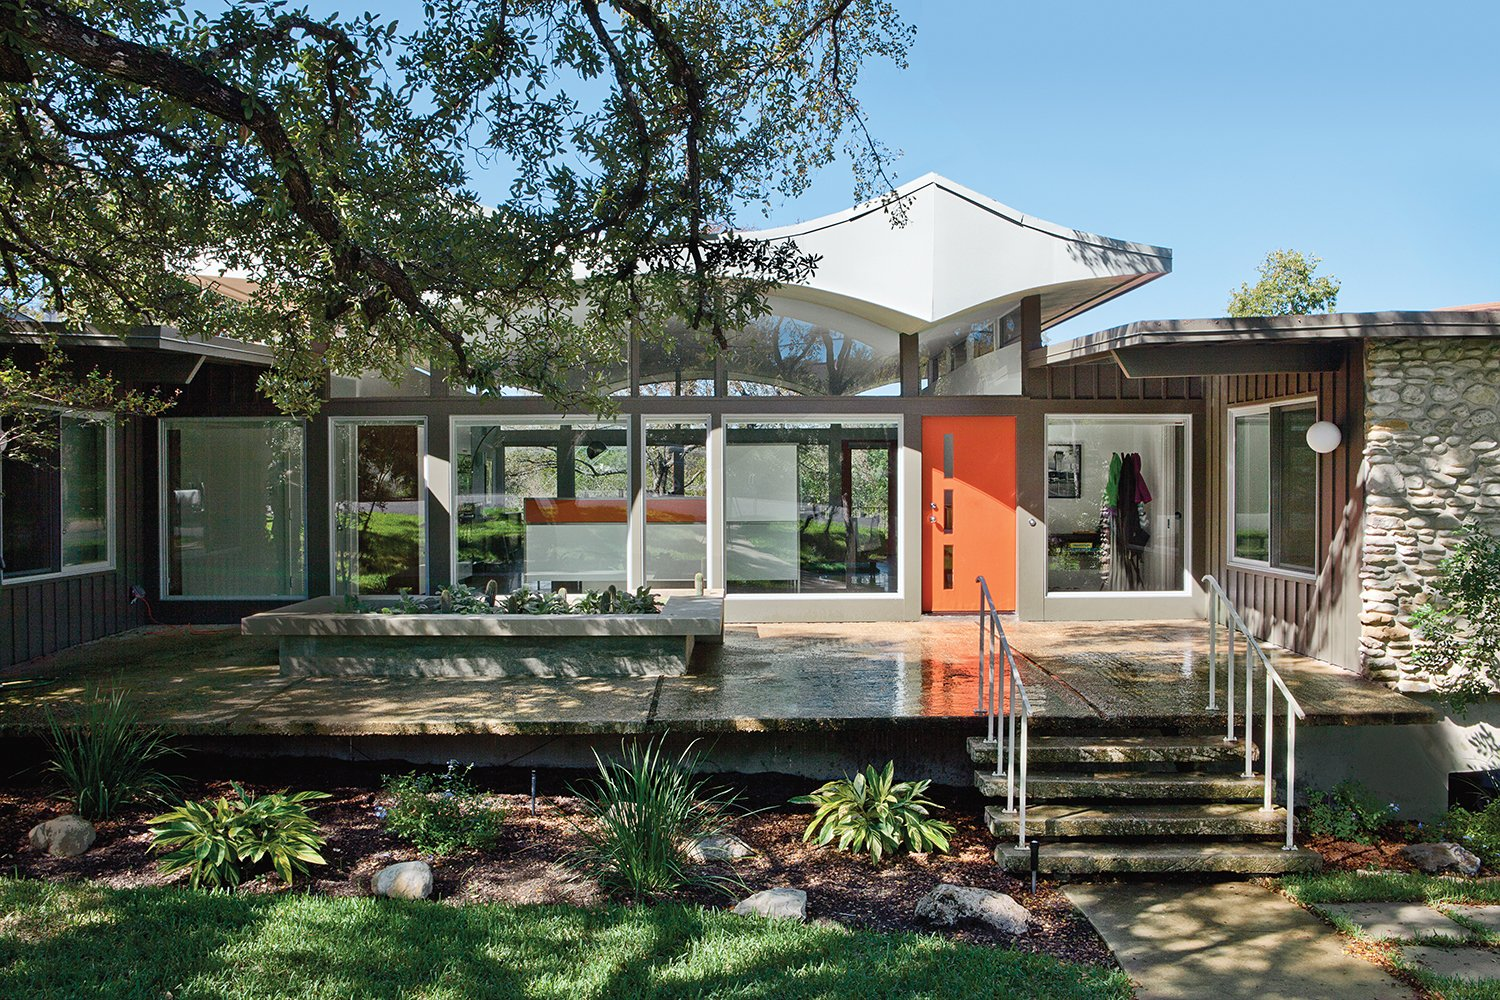 Articles about renovated midcentury gem austin on Dwell.com